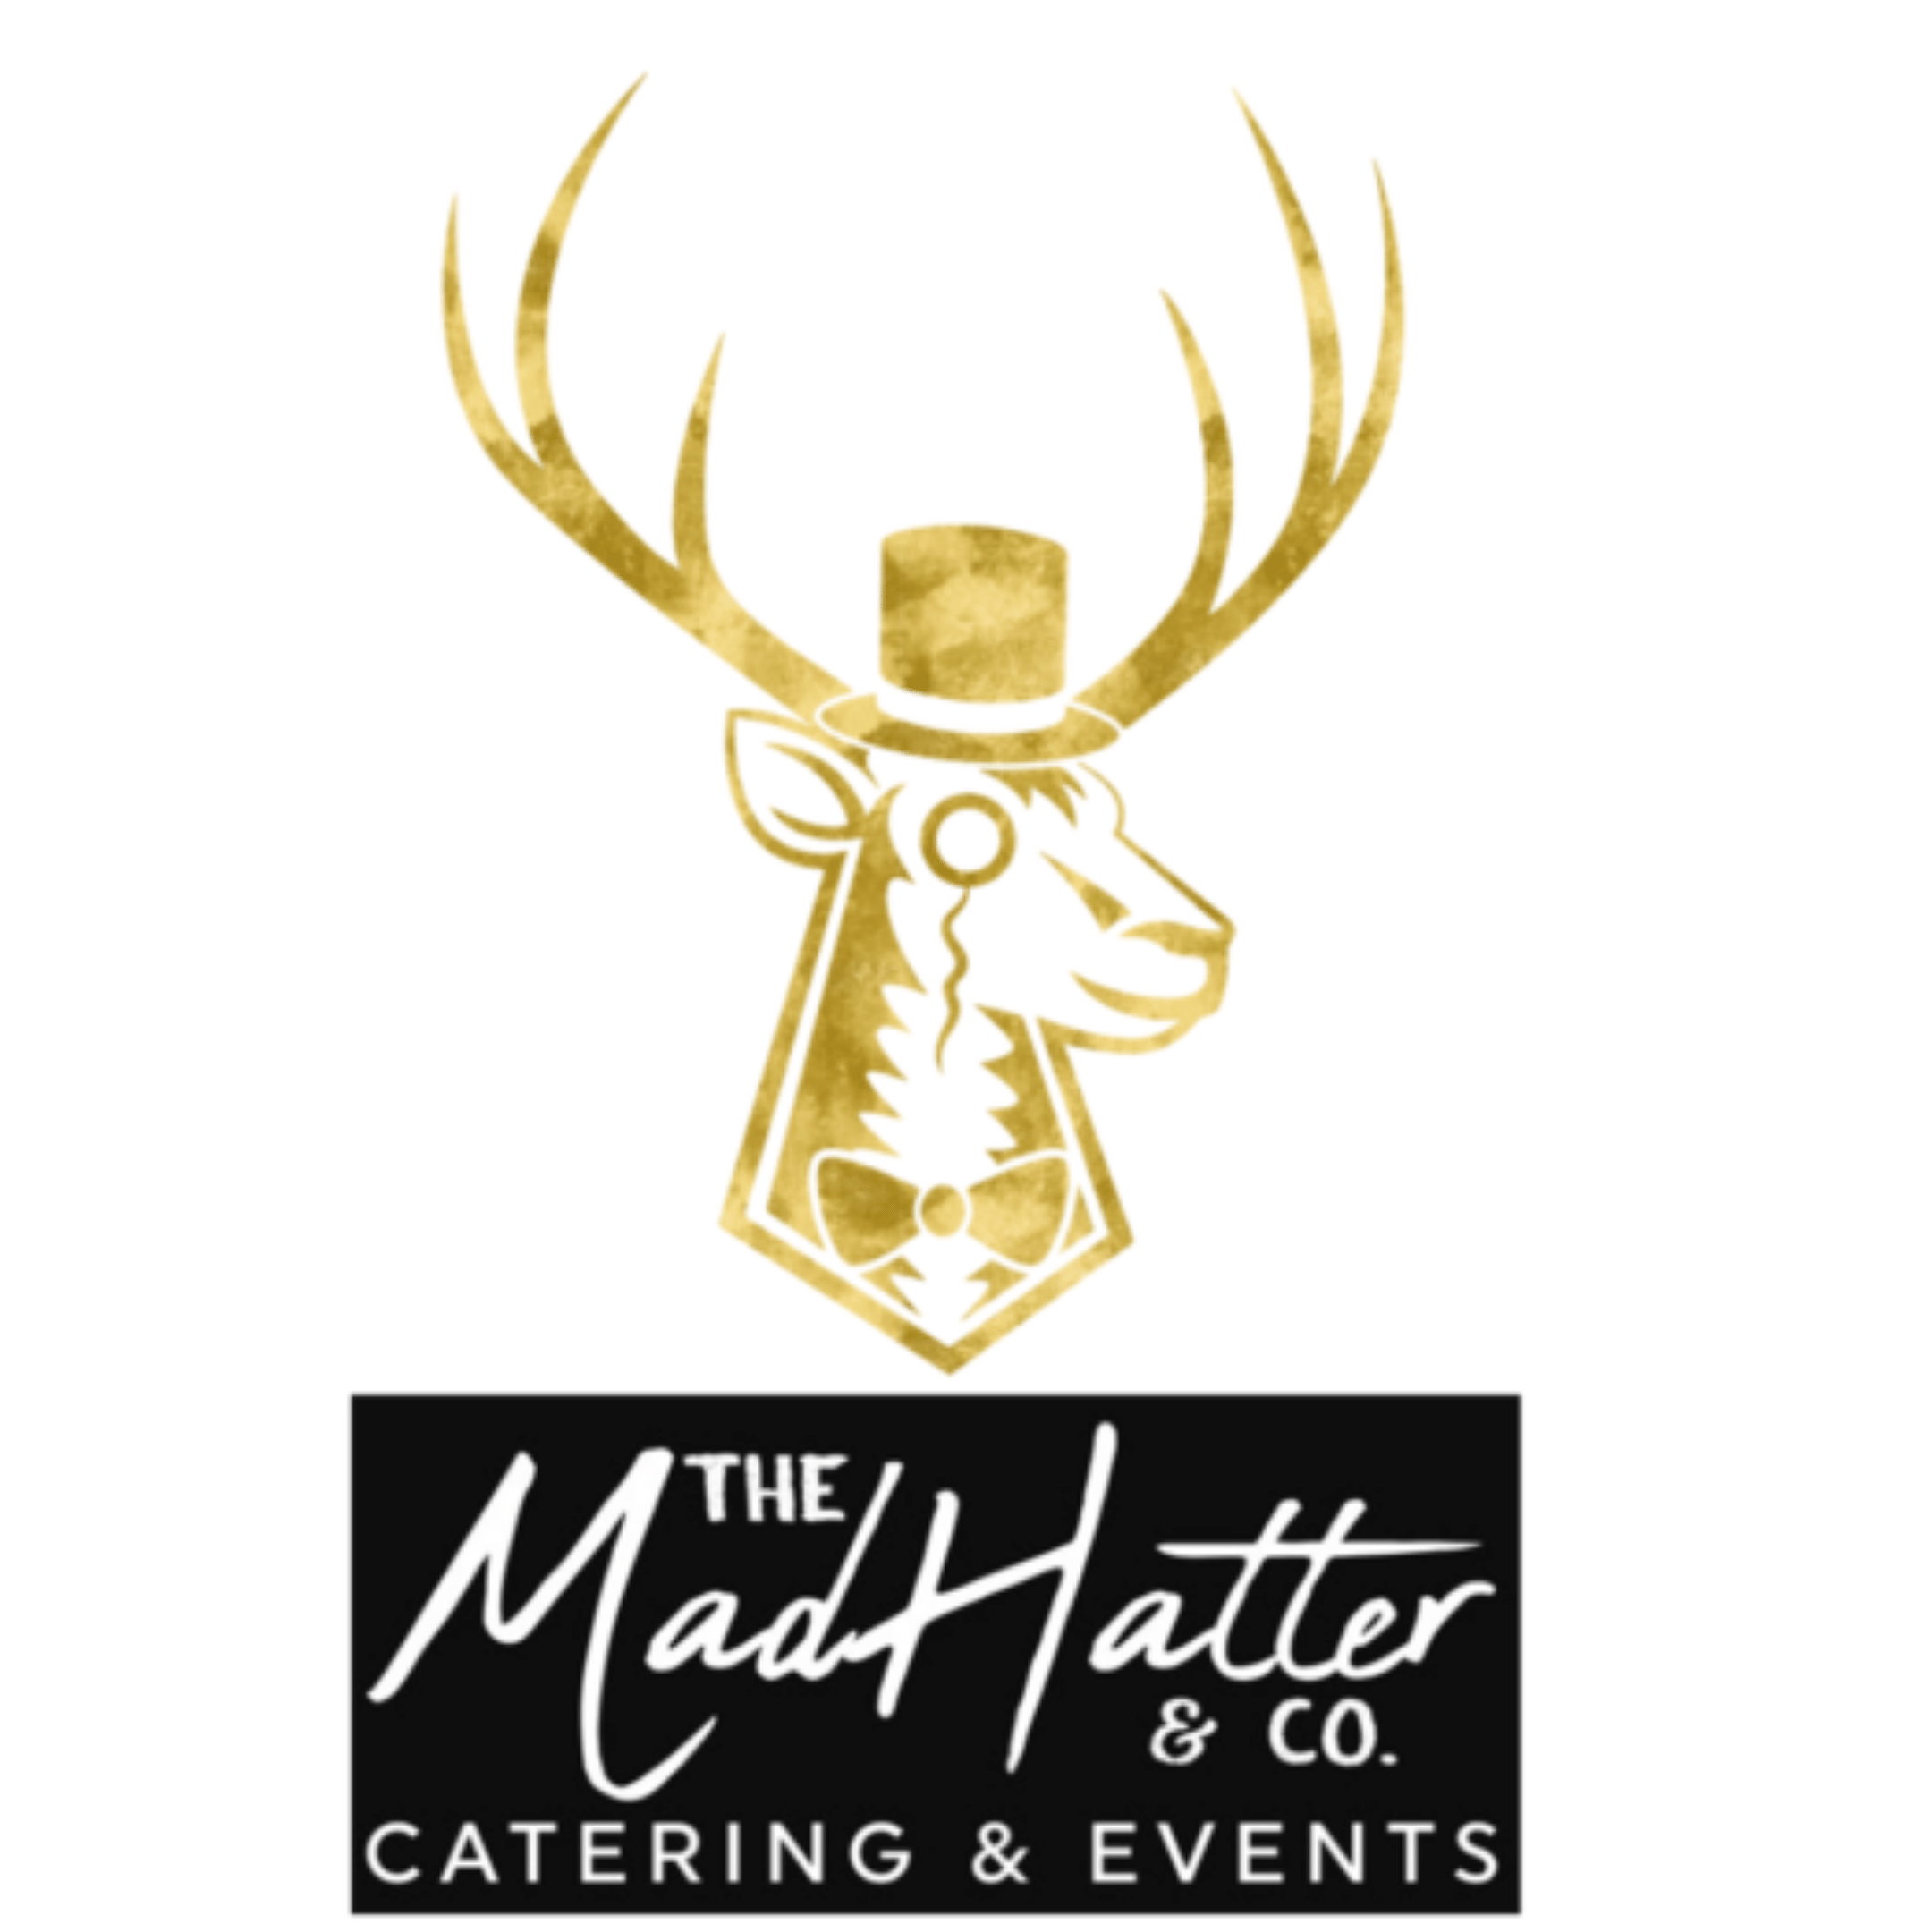 The MadHatter & Co